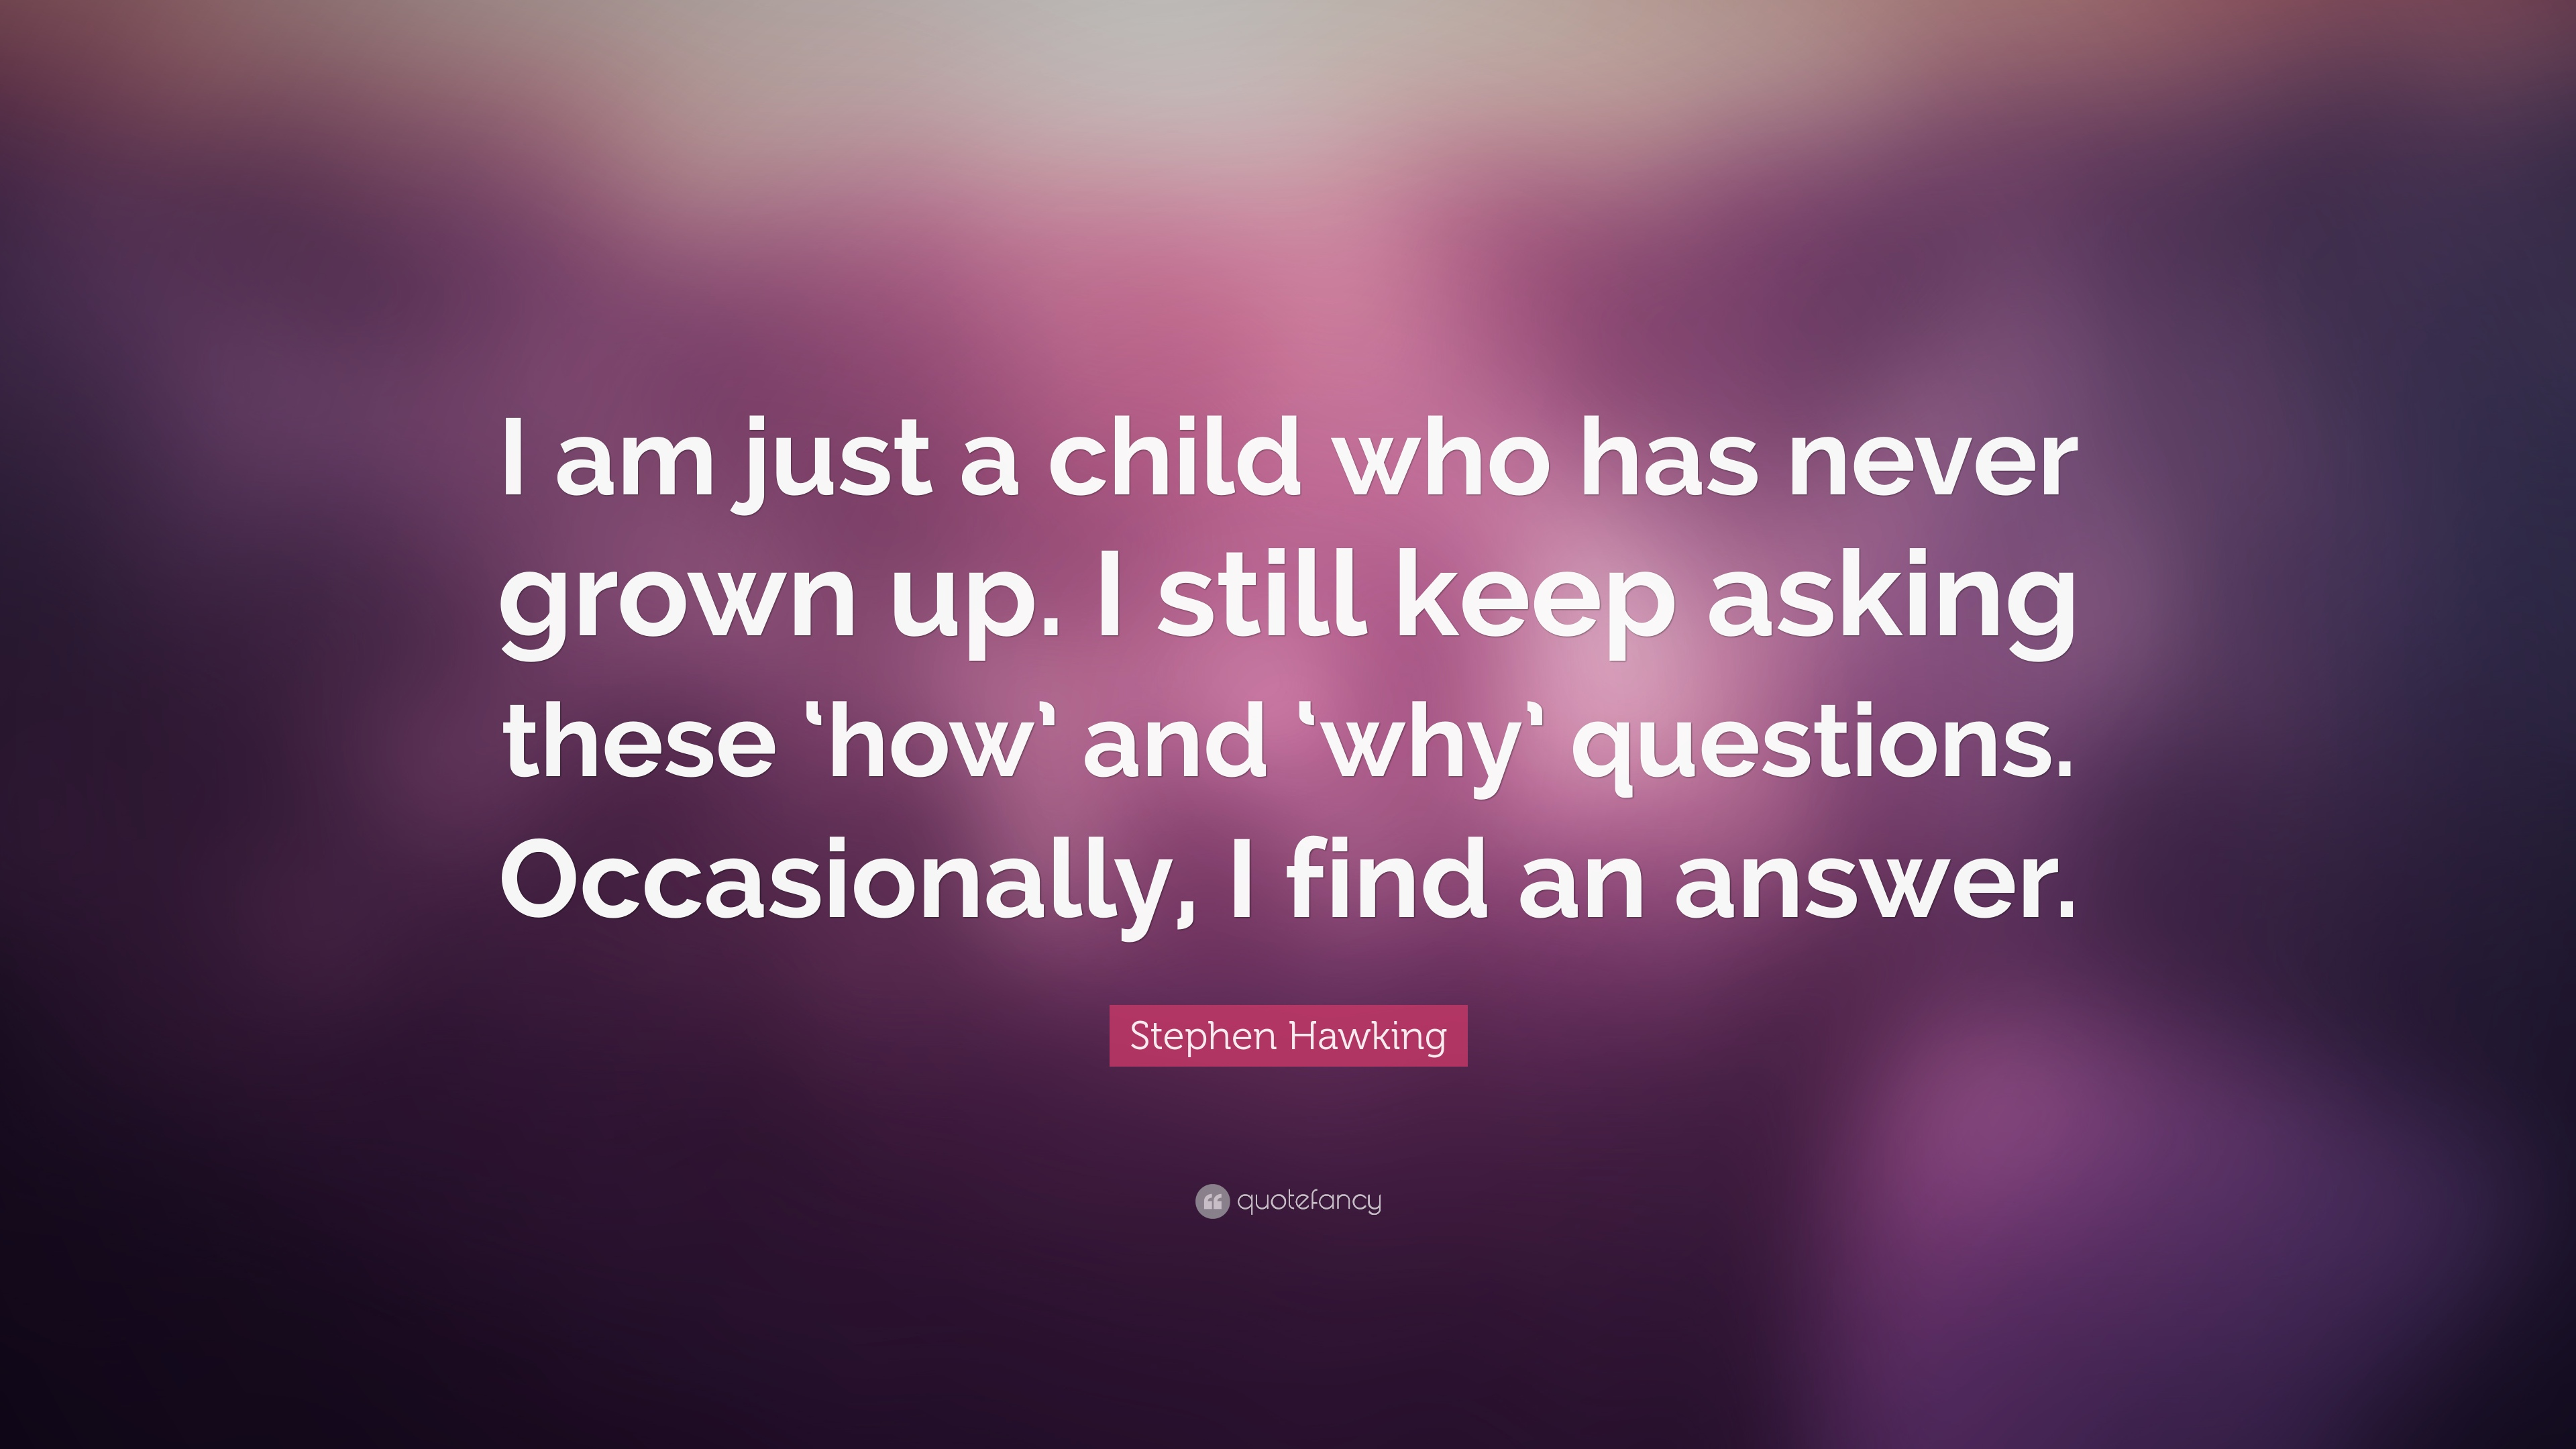 Quotes About Children (40 wallpapers) - Quotefancy